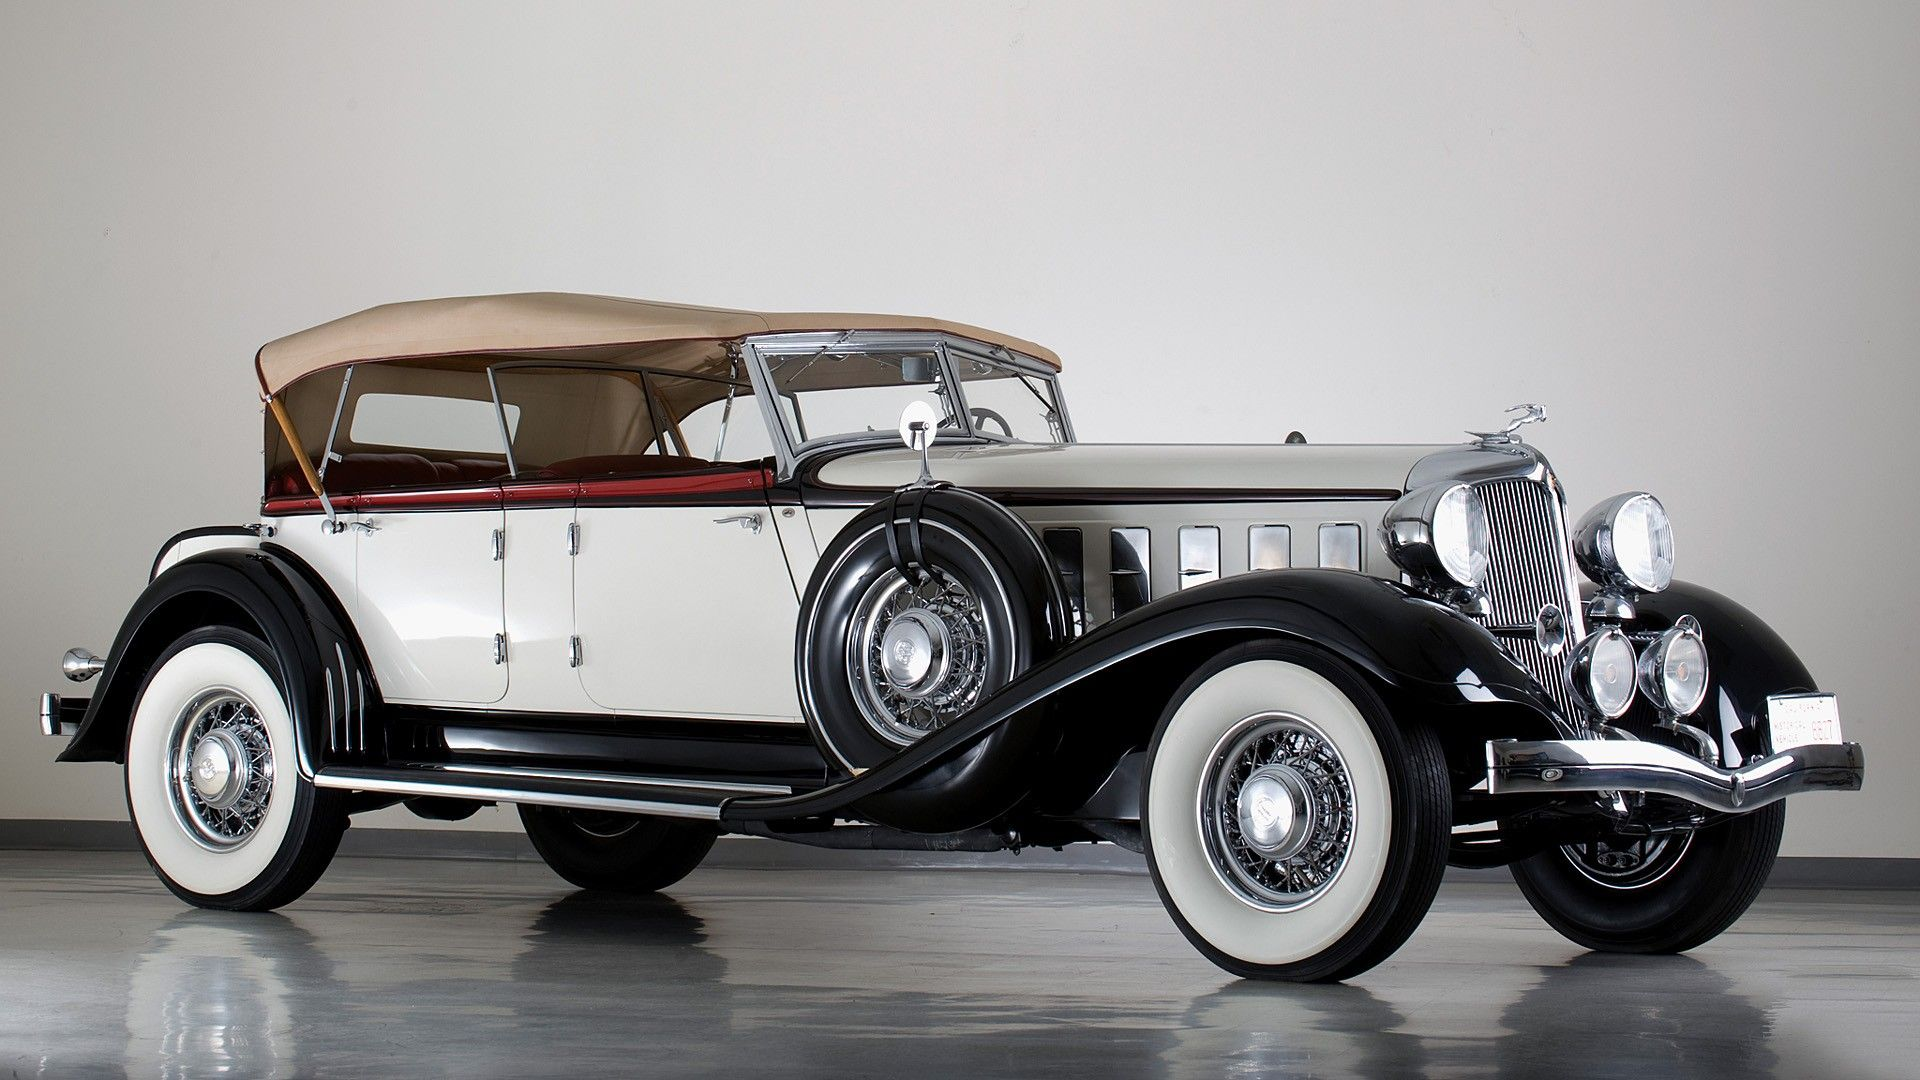 25 Beautiful Antique Cars For Car Lovers | Car photos, Cars and Vintage